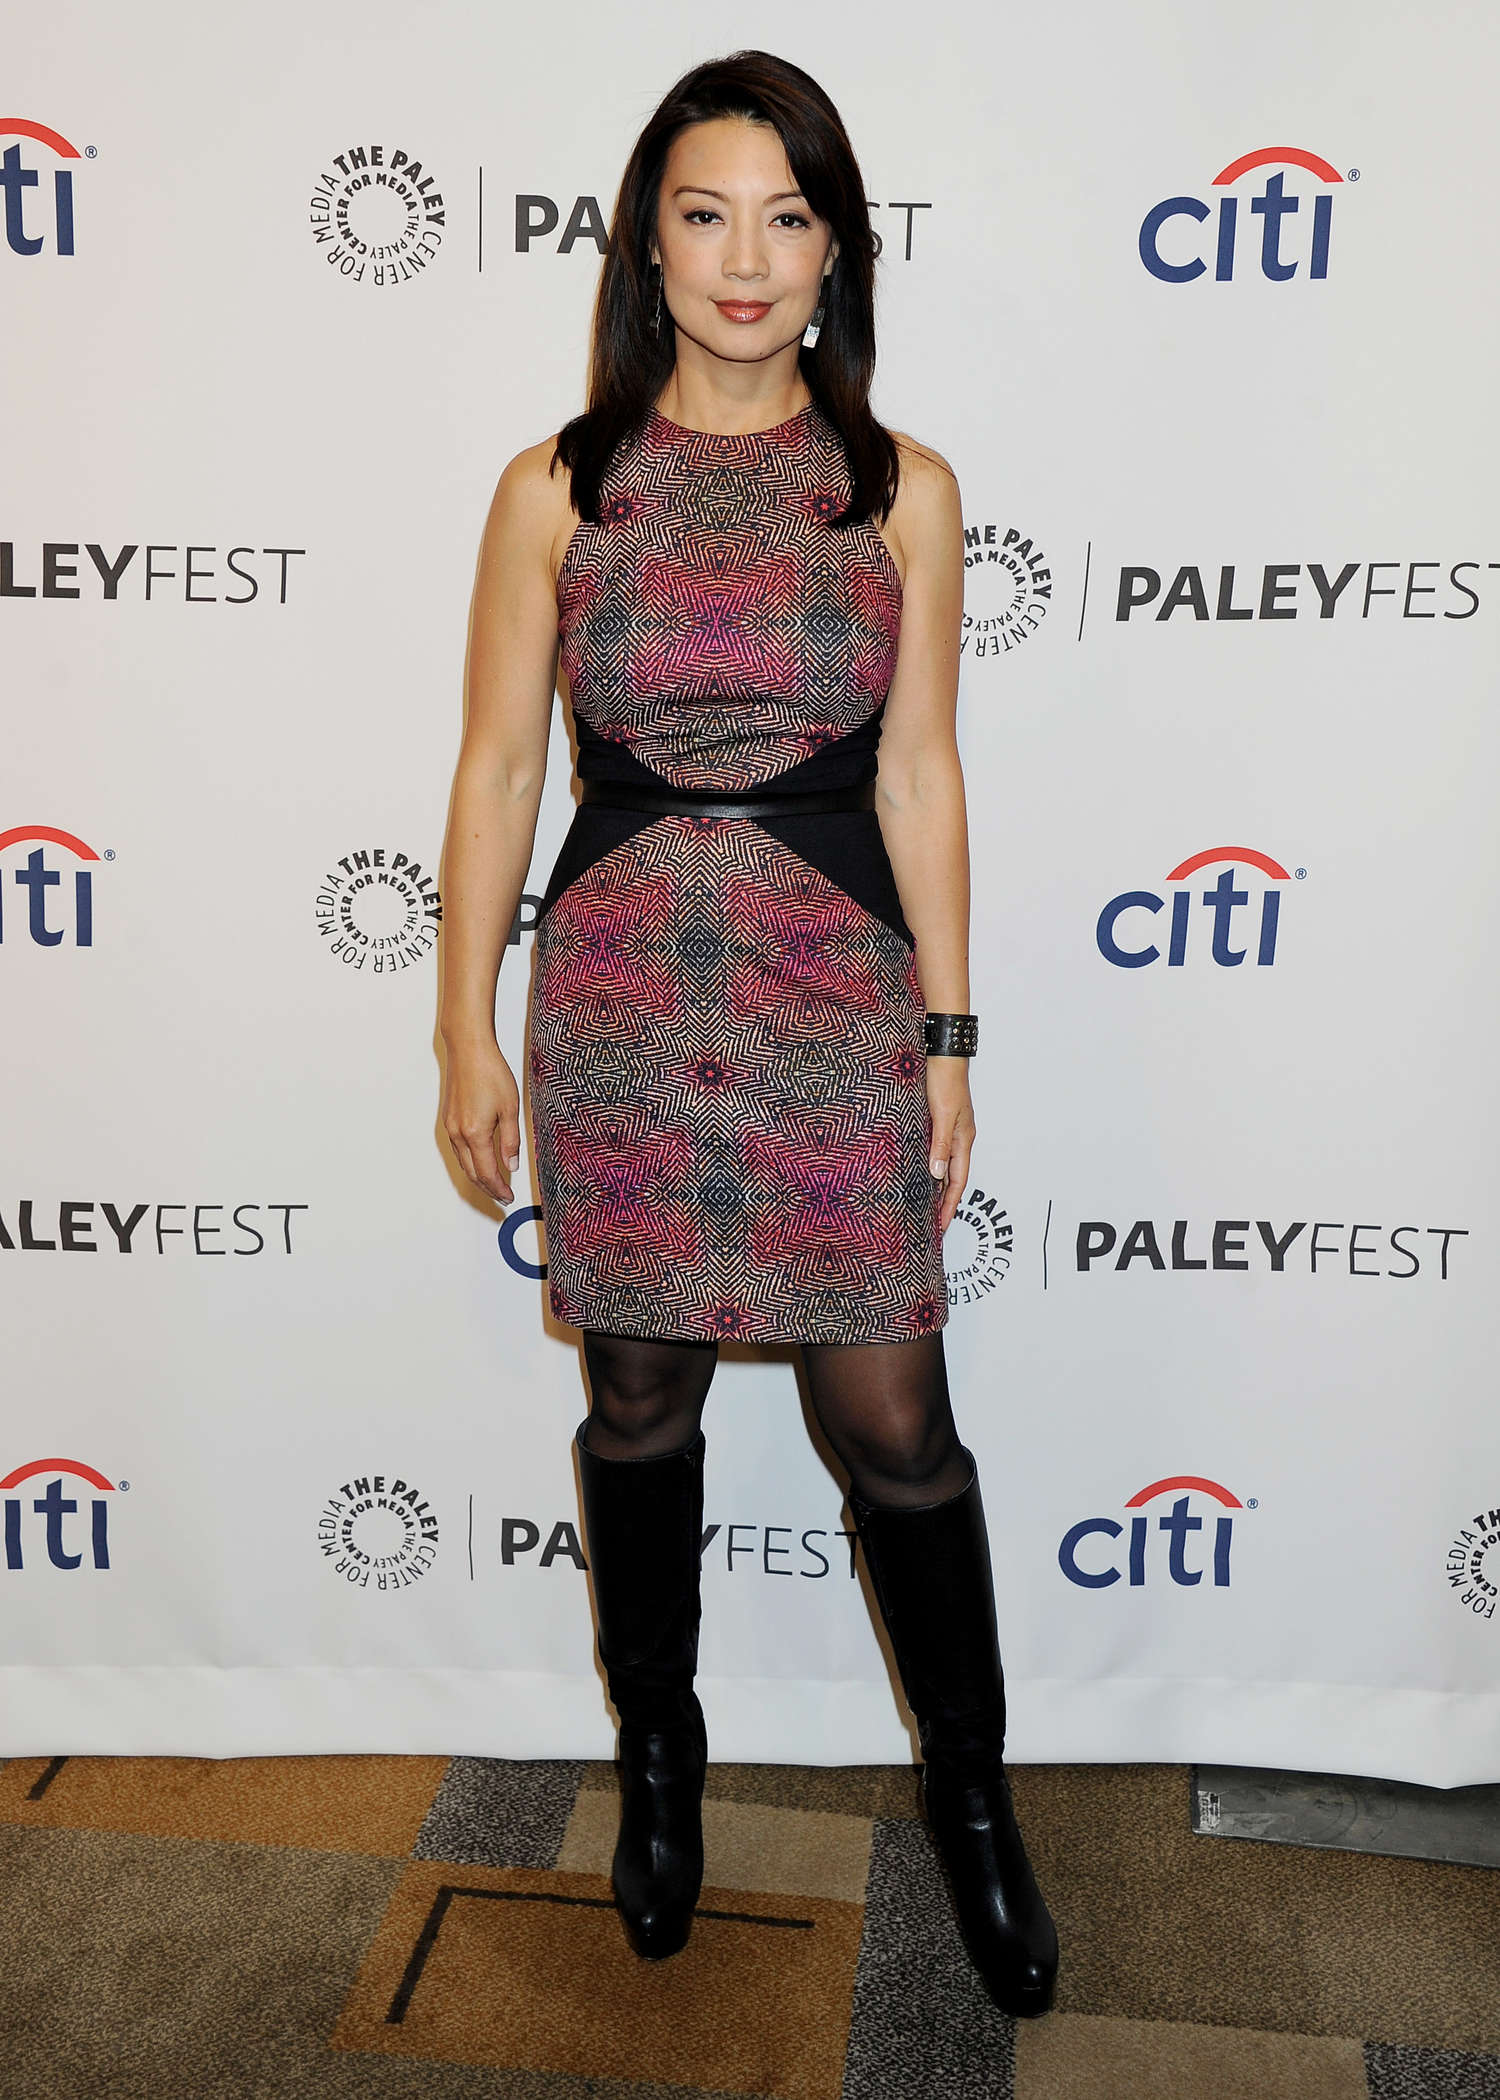 Ming-Na Wen PaleyFest An Evening with The Agents of Shield in Beverly Hills